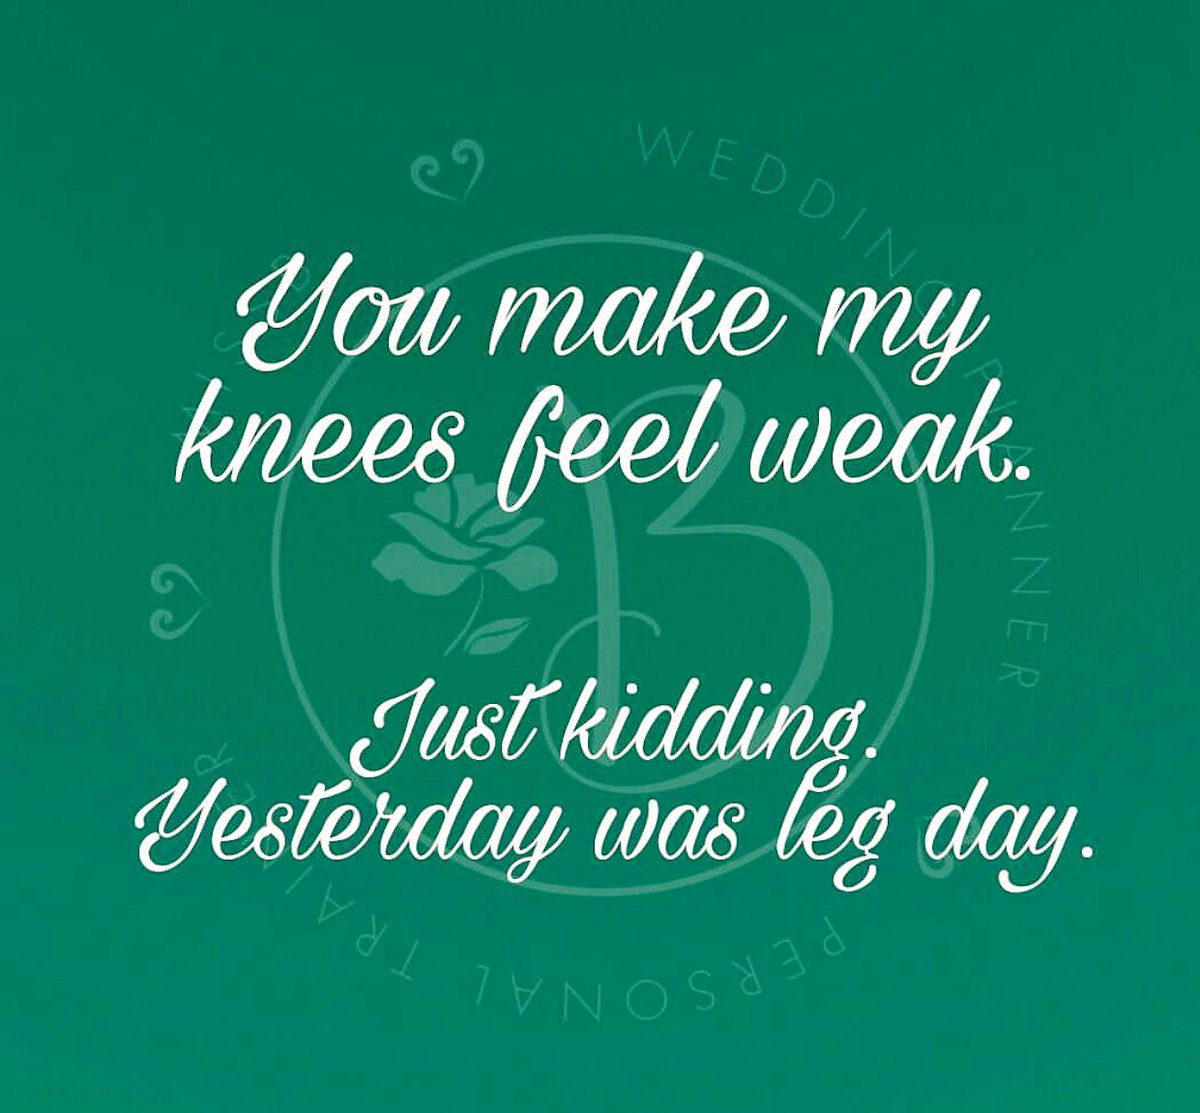 #FunFriday  Who else is in the gym in the run up to summertime? Not #TeamPersona We only excercise our fingertips at our desks #funnyquote<br>http://pic.twitter.com/FLM4sdGqsX